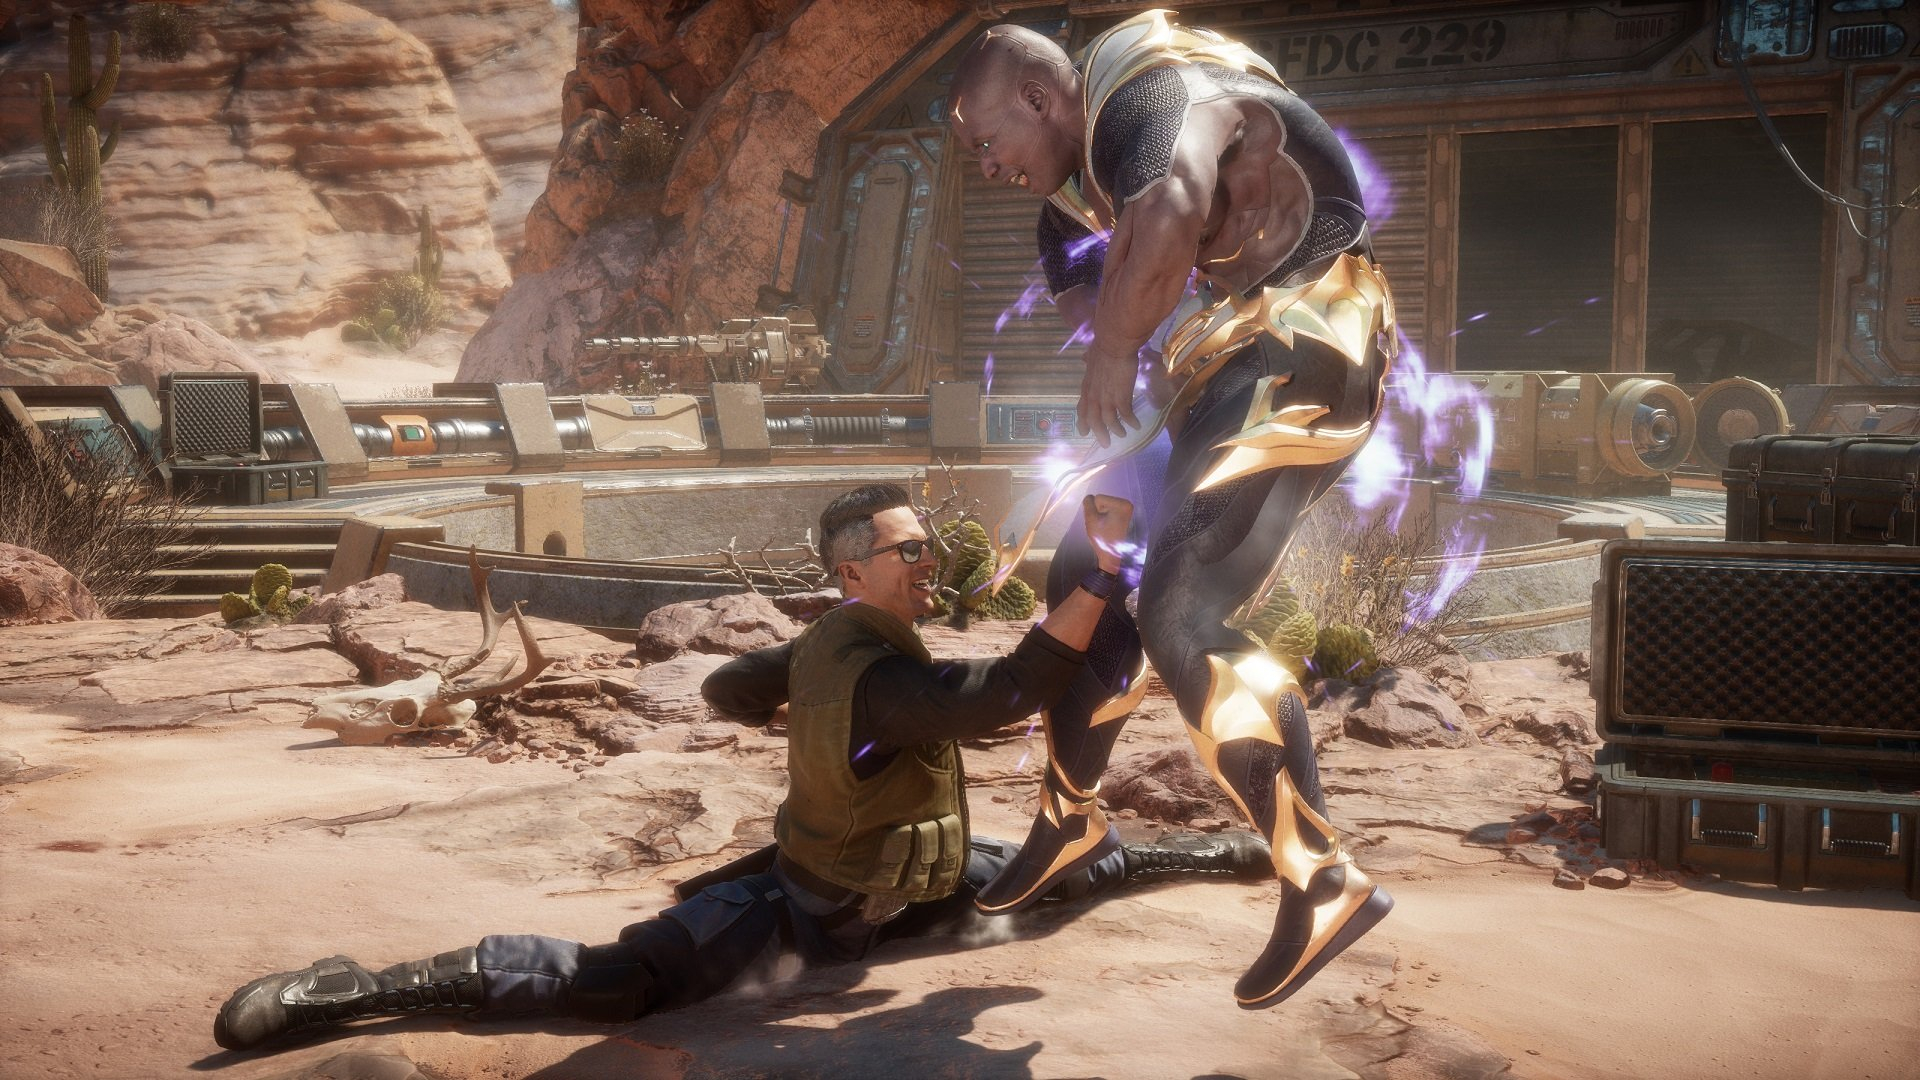 Adult Video Gameplay mortal kombat 11 review: flawed victory | shacknews